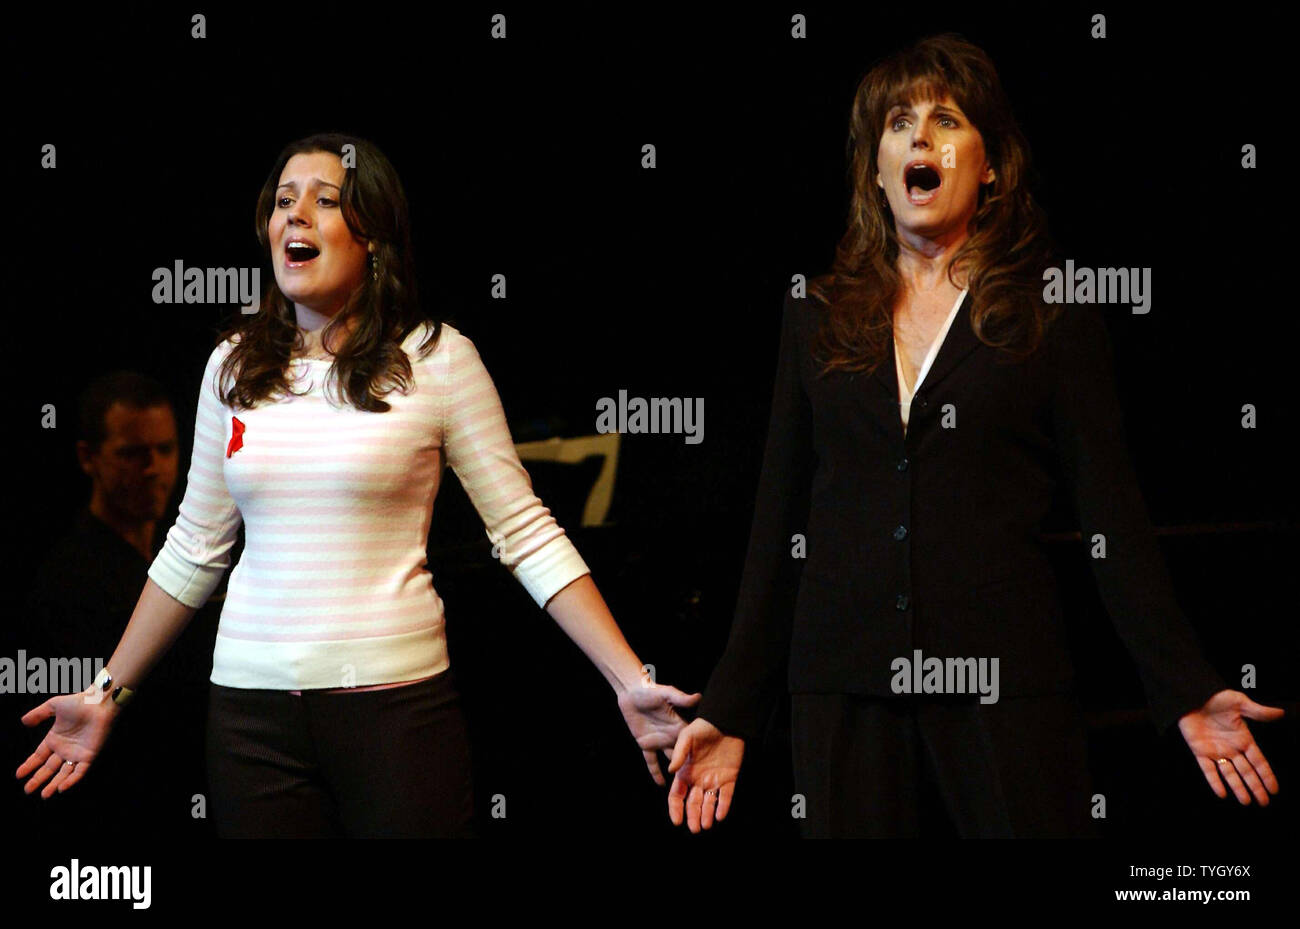 Katharine Luckinbill Left And Her Mom Lucie Arnaz Perform Hey Look Me Over From The Cy Is katharine luckinbill in a relationship? https www alamy com katharine luckinbill left and her mom lucie arnaz perform hey look me over from the cy coleman musical wildcat which starred lucie mom lucille ball at the jan 10 2005 memorial service for composer cy coleman held at broadways majestic theatre coleman died at the age of 75 in nov 2004 upi photoezio petersen image257913458 html